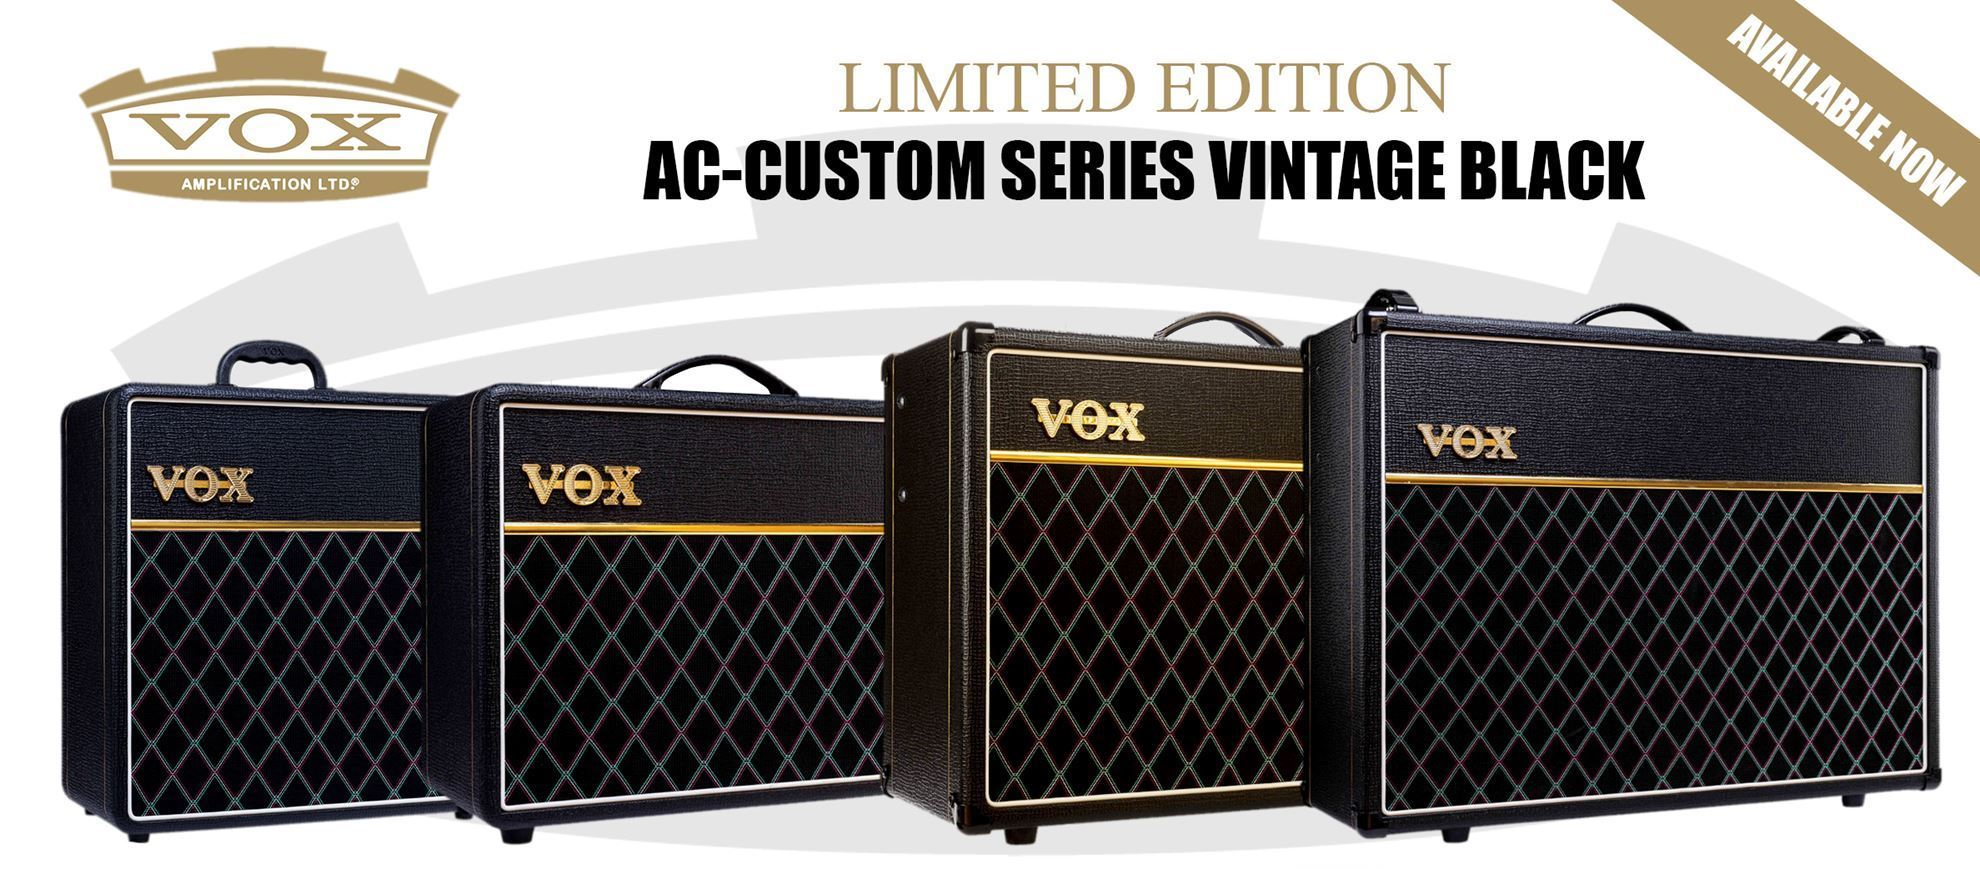 Limited Edition AC Custom Series - Vintage Black